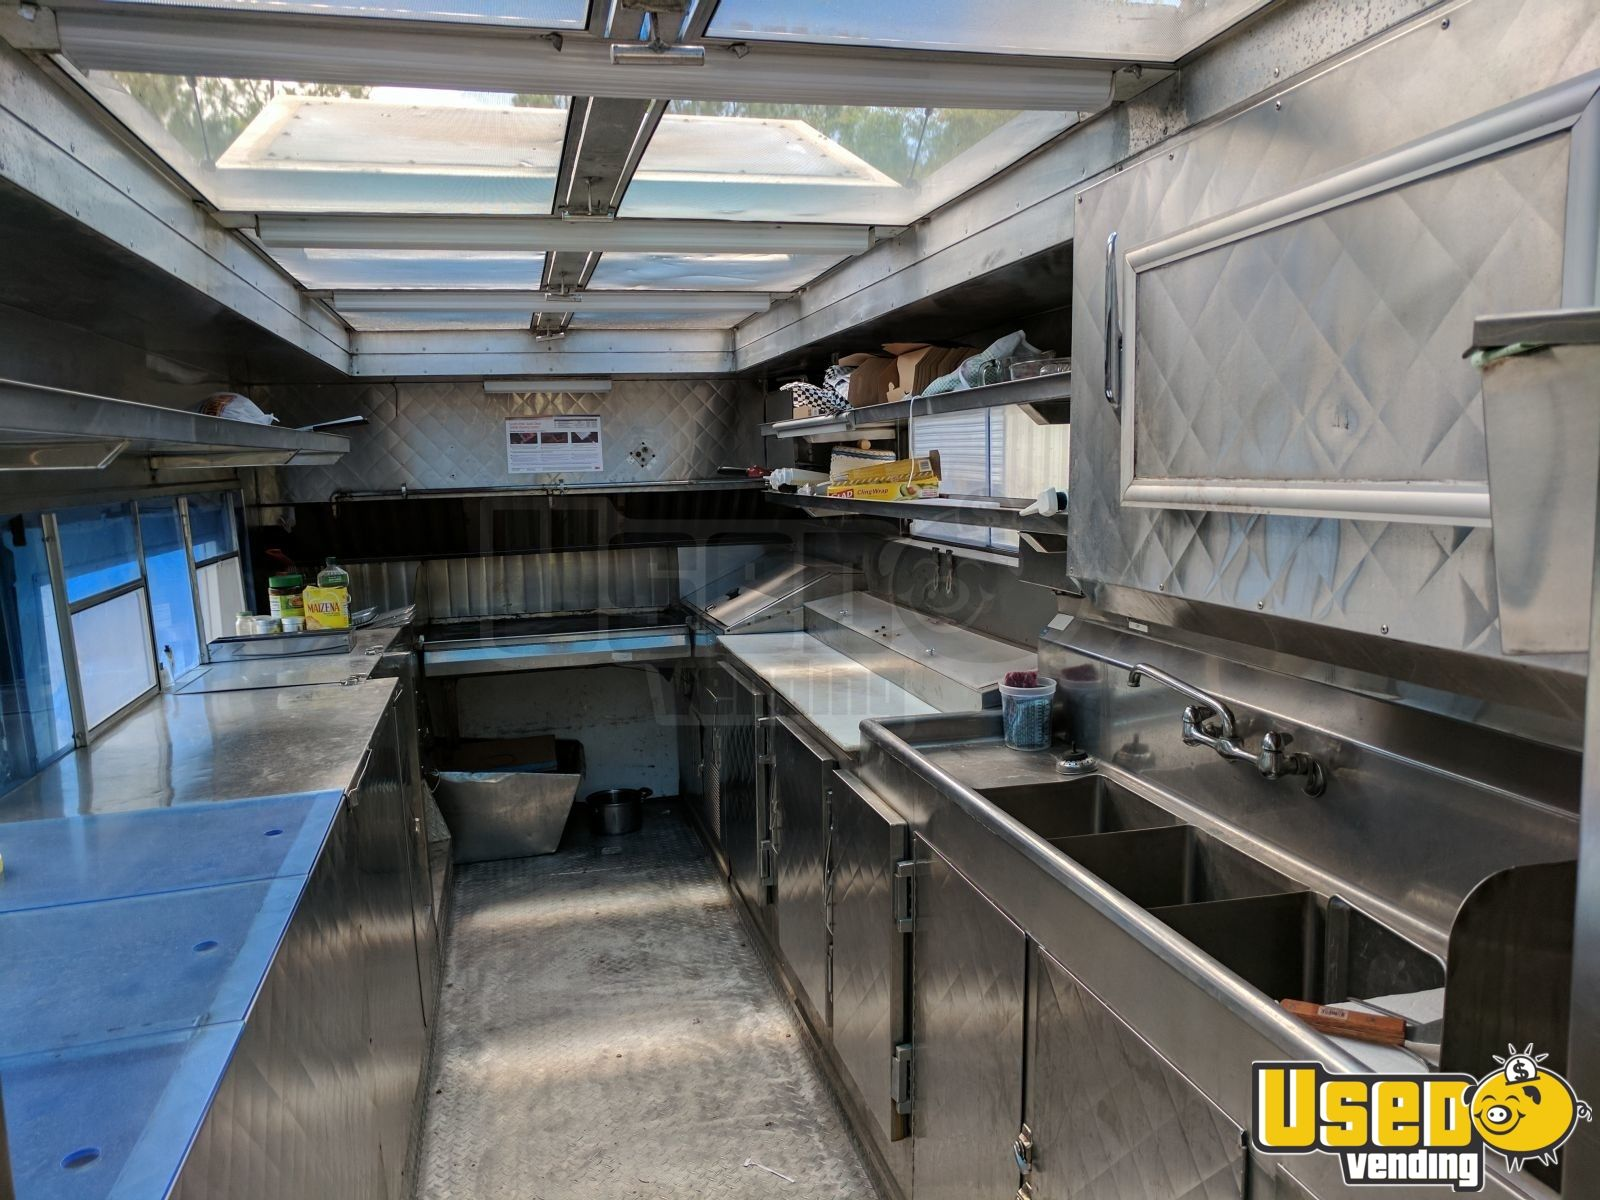 1992 Chevy P30 All-purpose Food Truck Steam Table Texas for Sale - 8